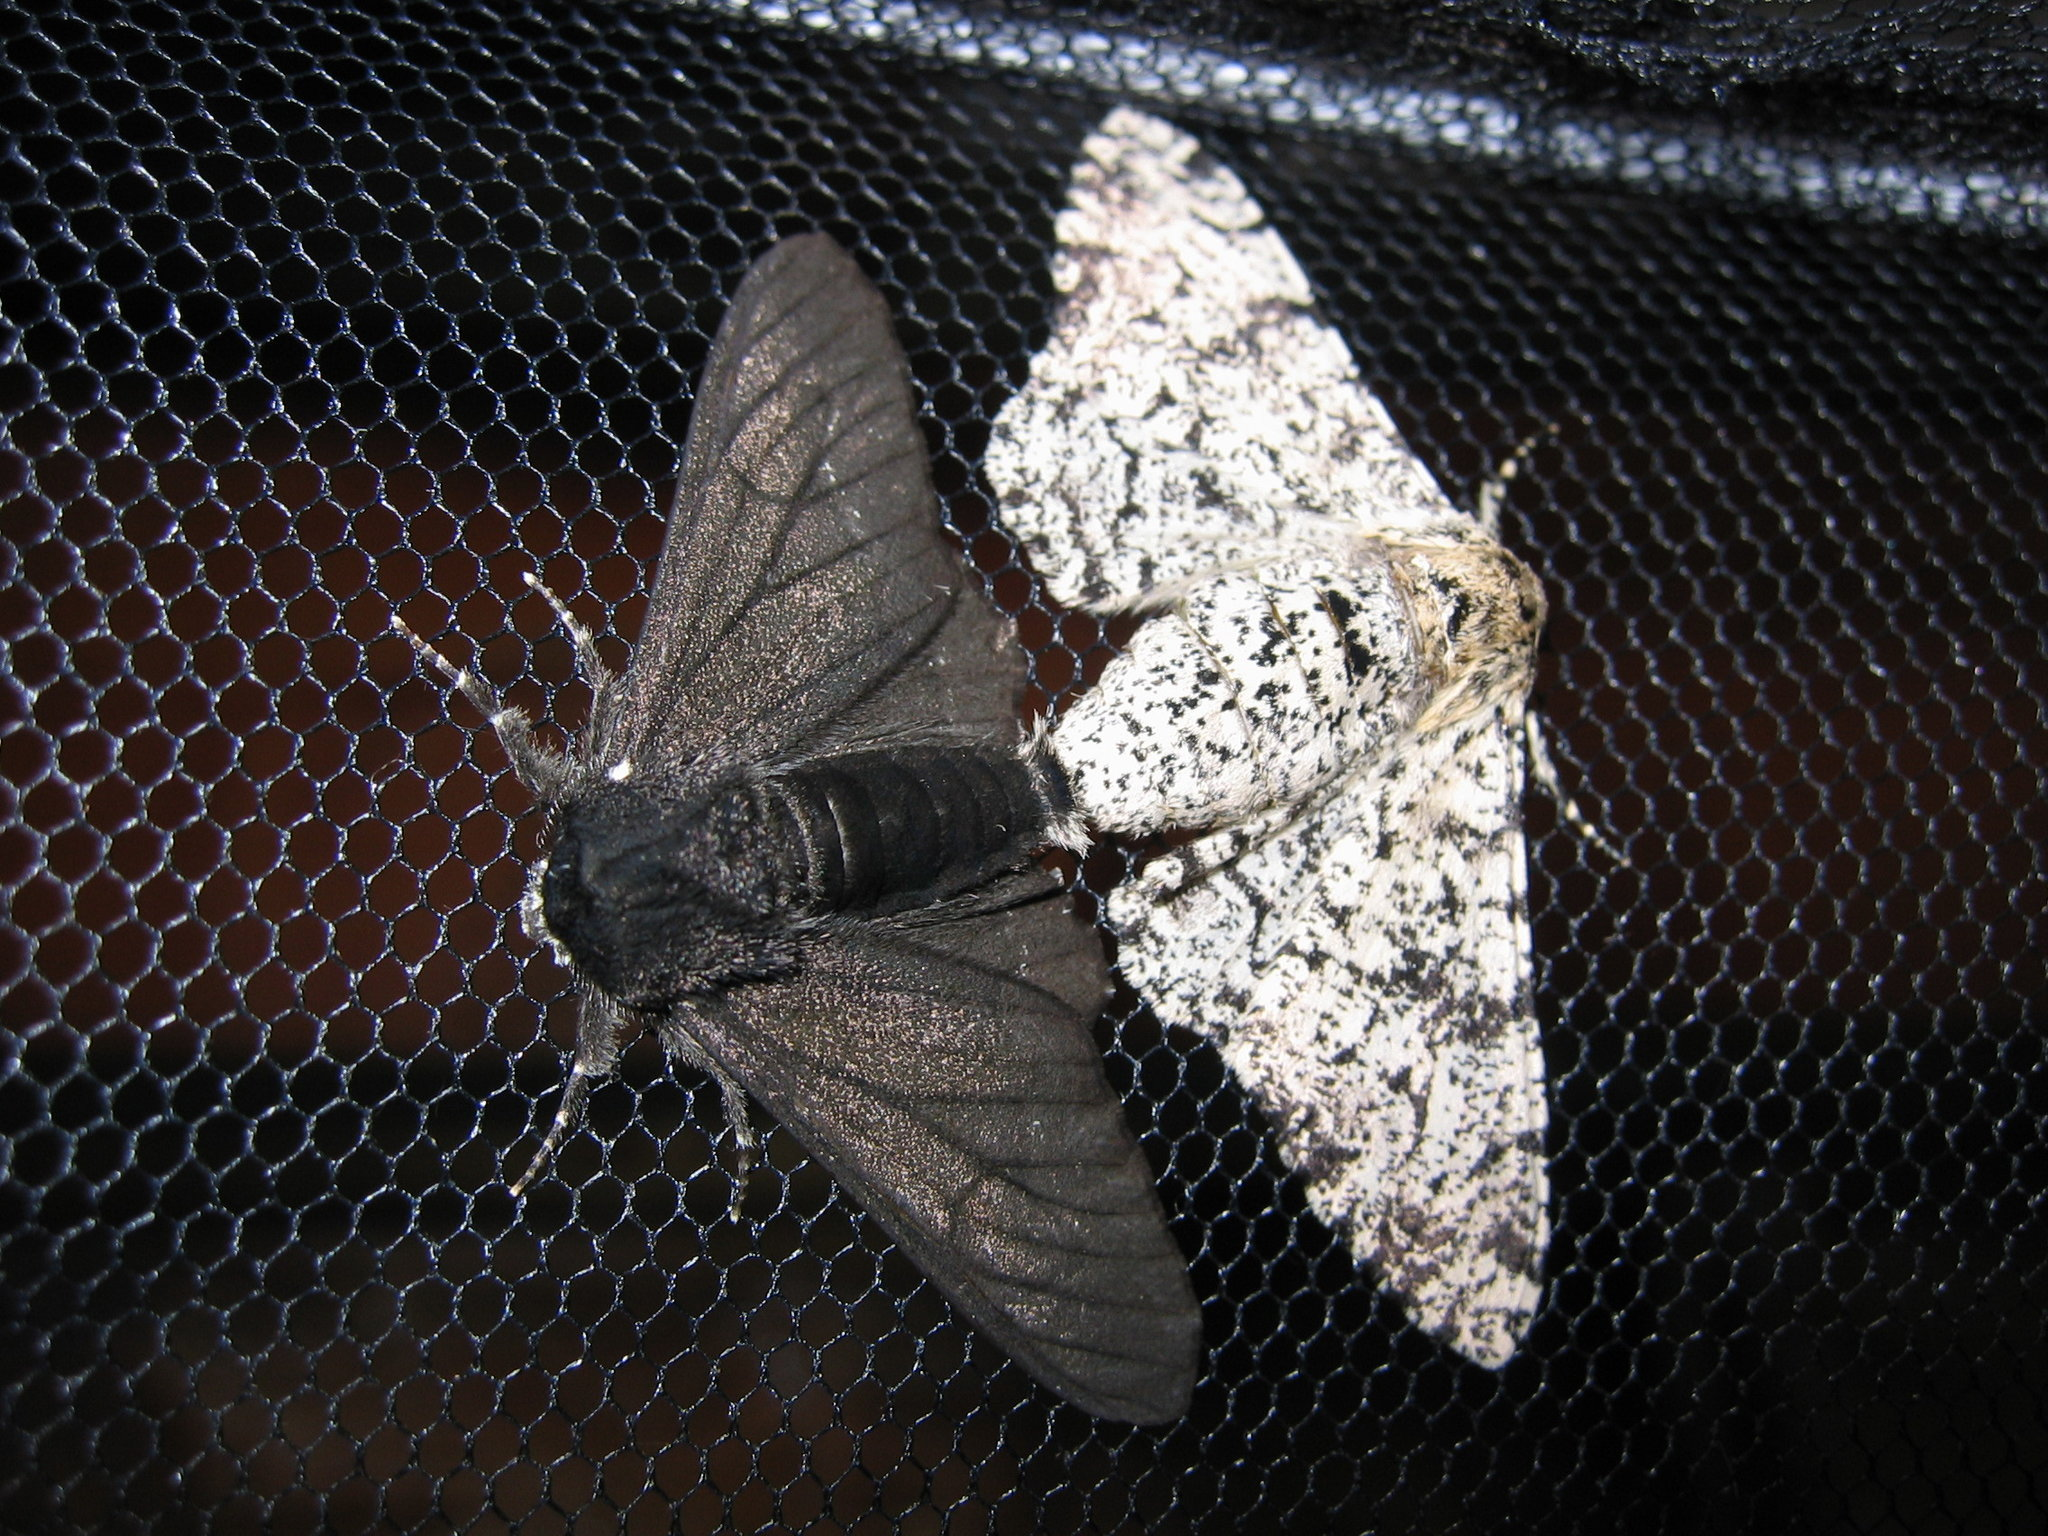 Stu S Of Moth And Butterfly Genes Color In A Scientific